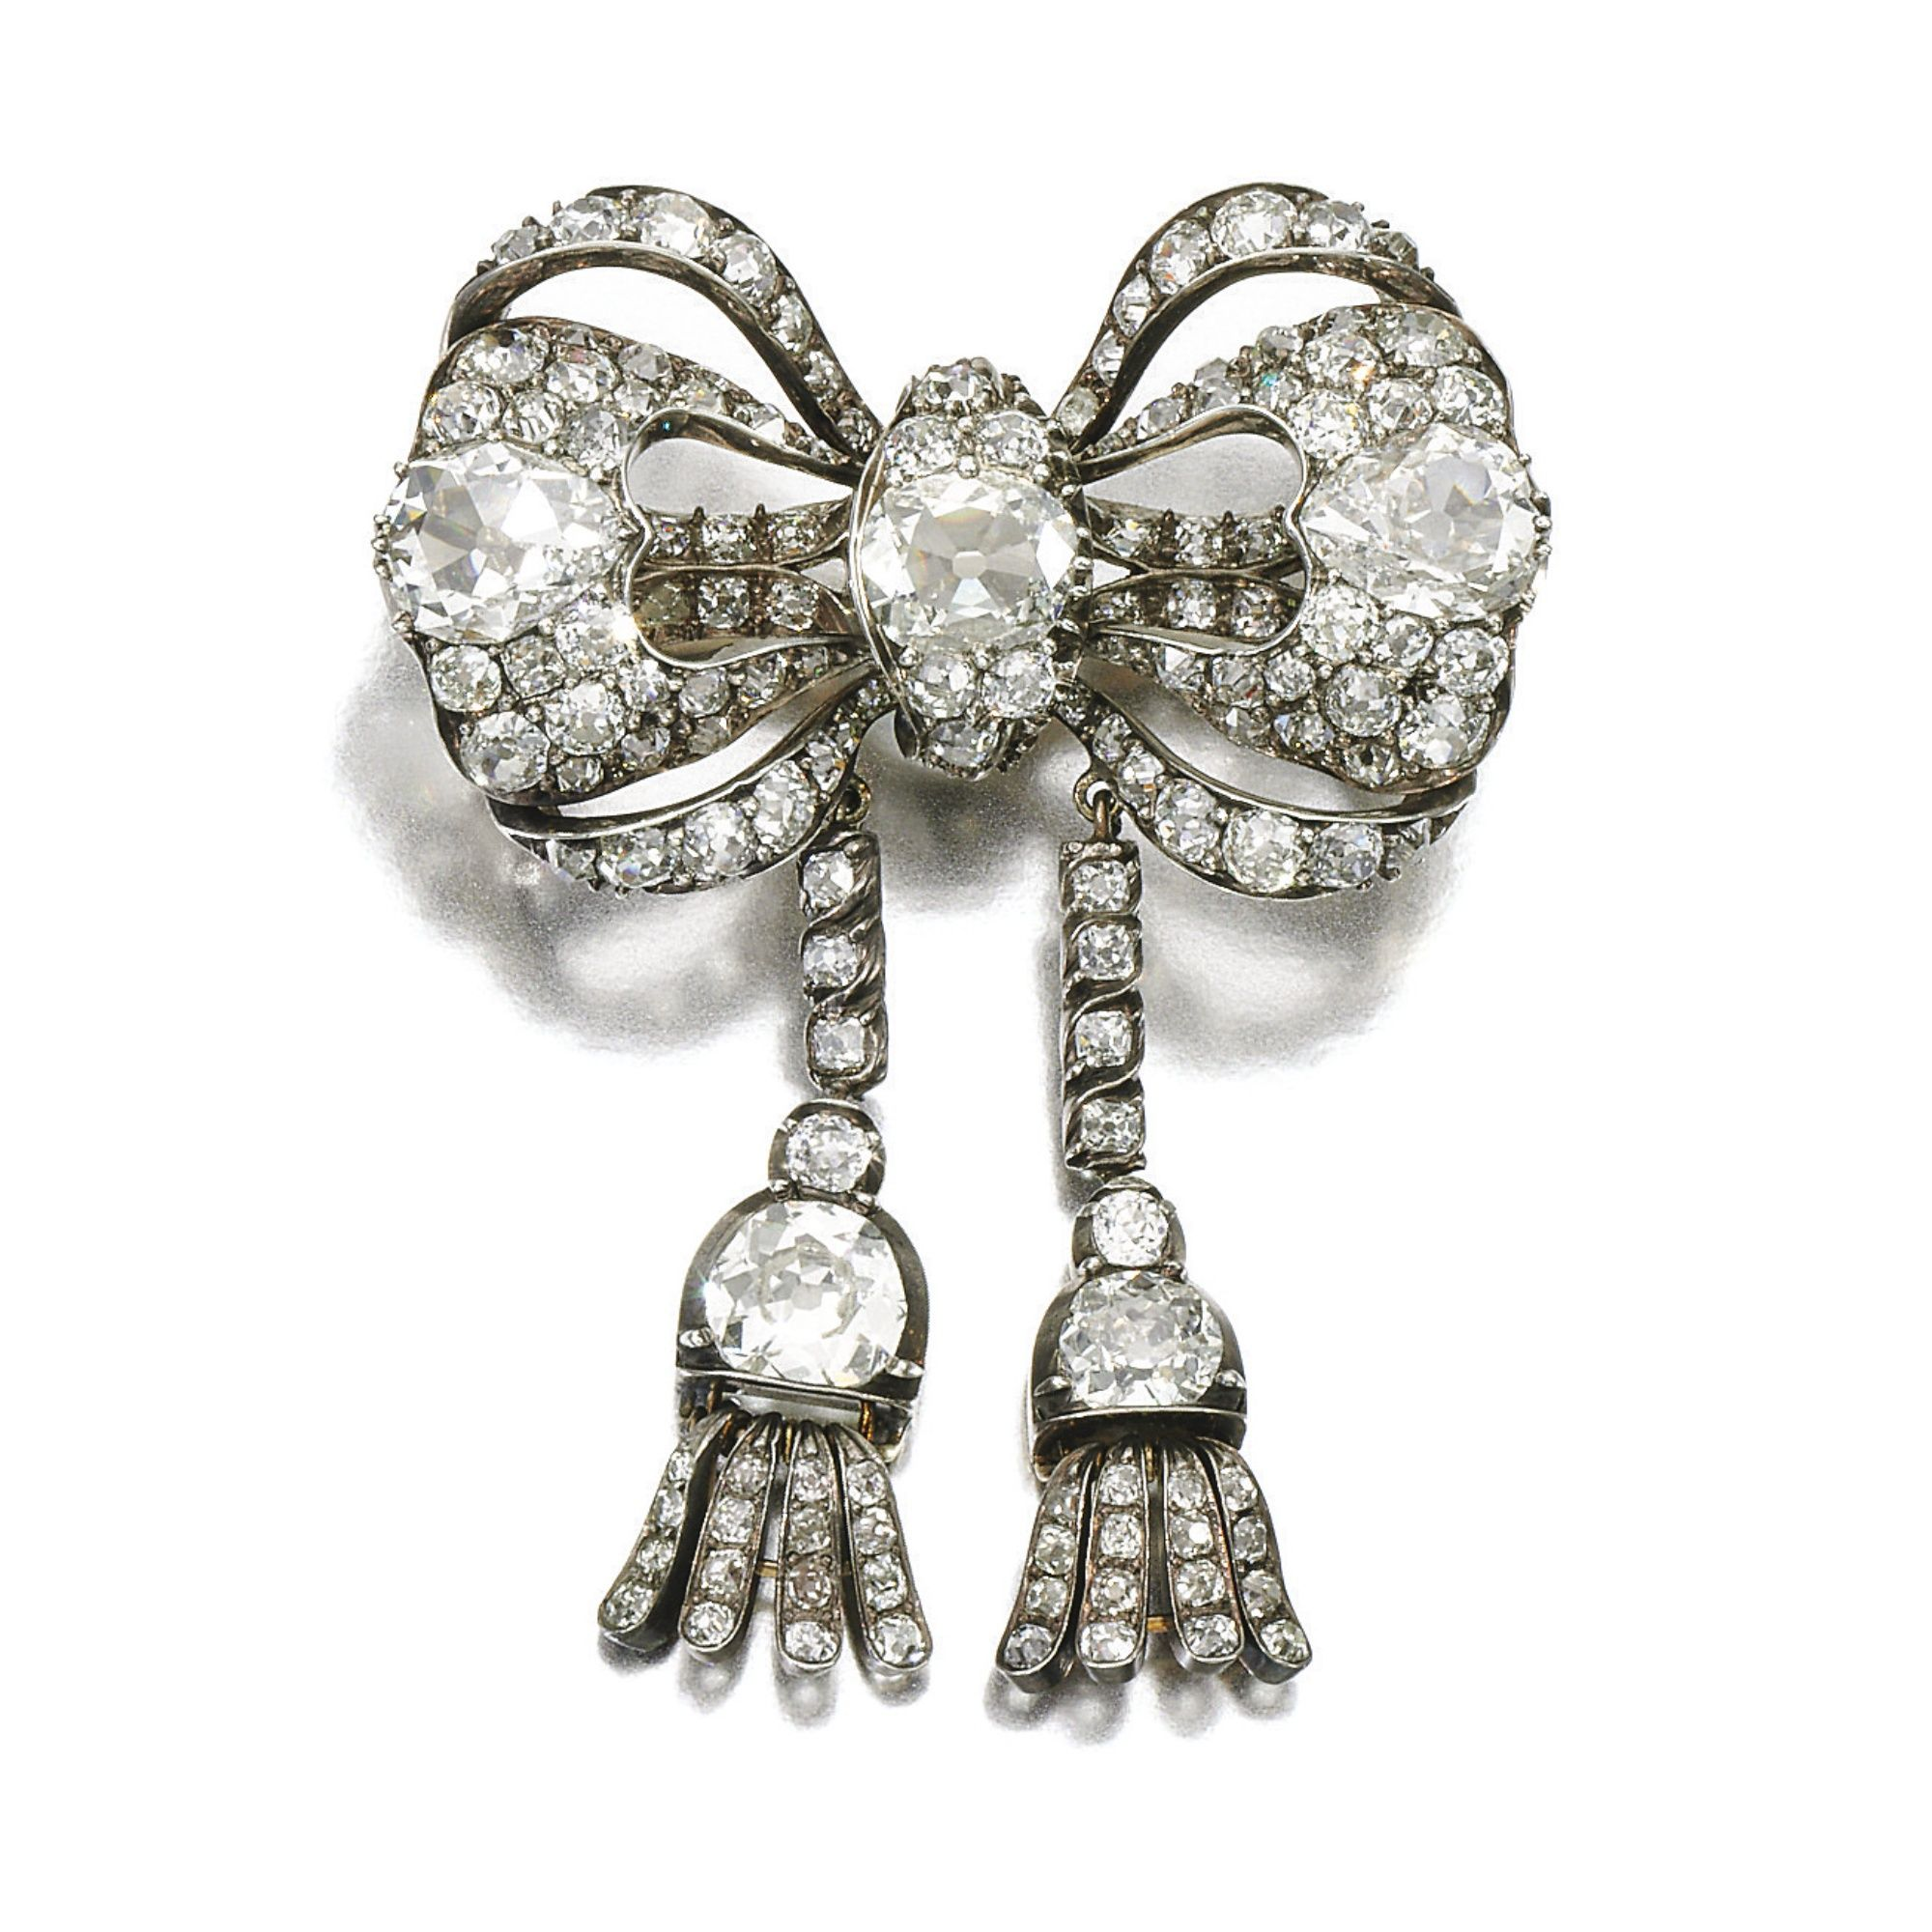 DIAMOND BROOCH, CIRCA 1840 Designed as a bow suspending two tassels, set with cushion-, pear-shaped and circular-cut diamonds, later pin fitting.